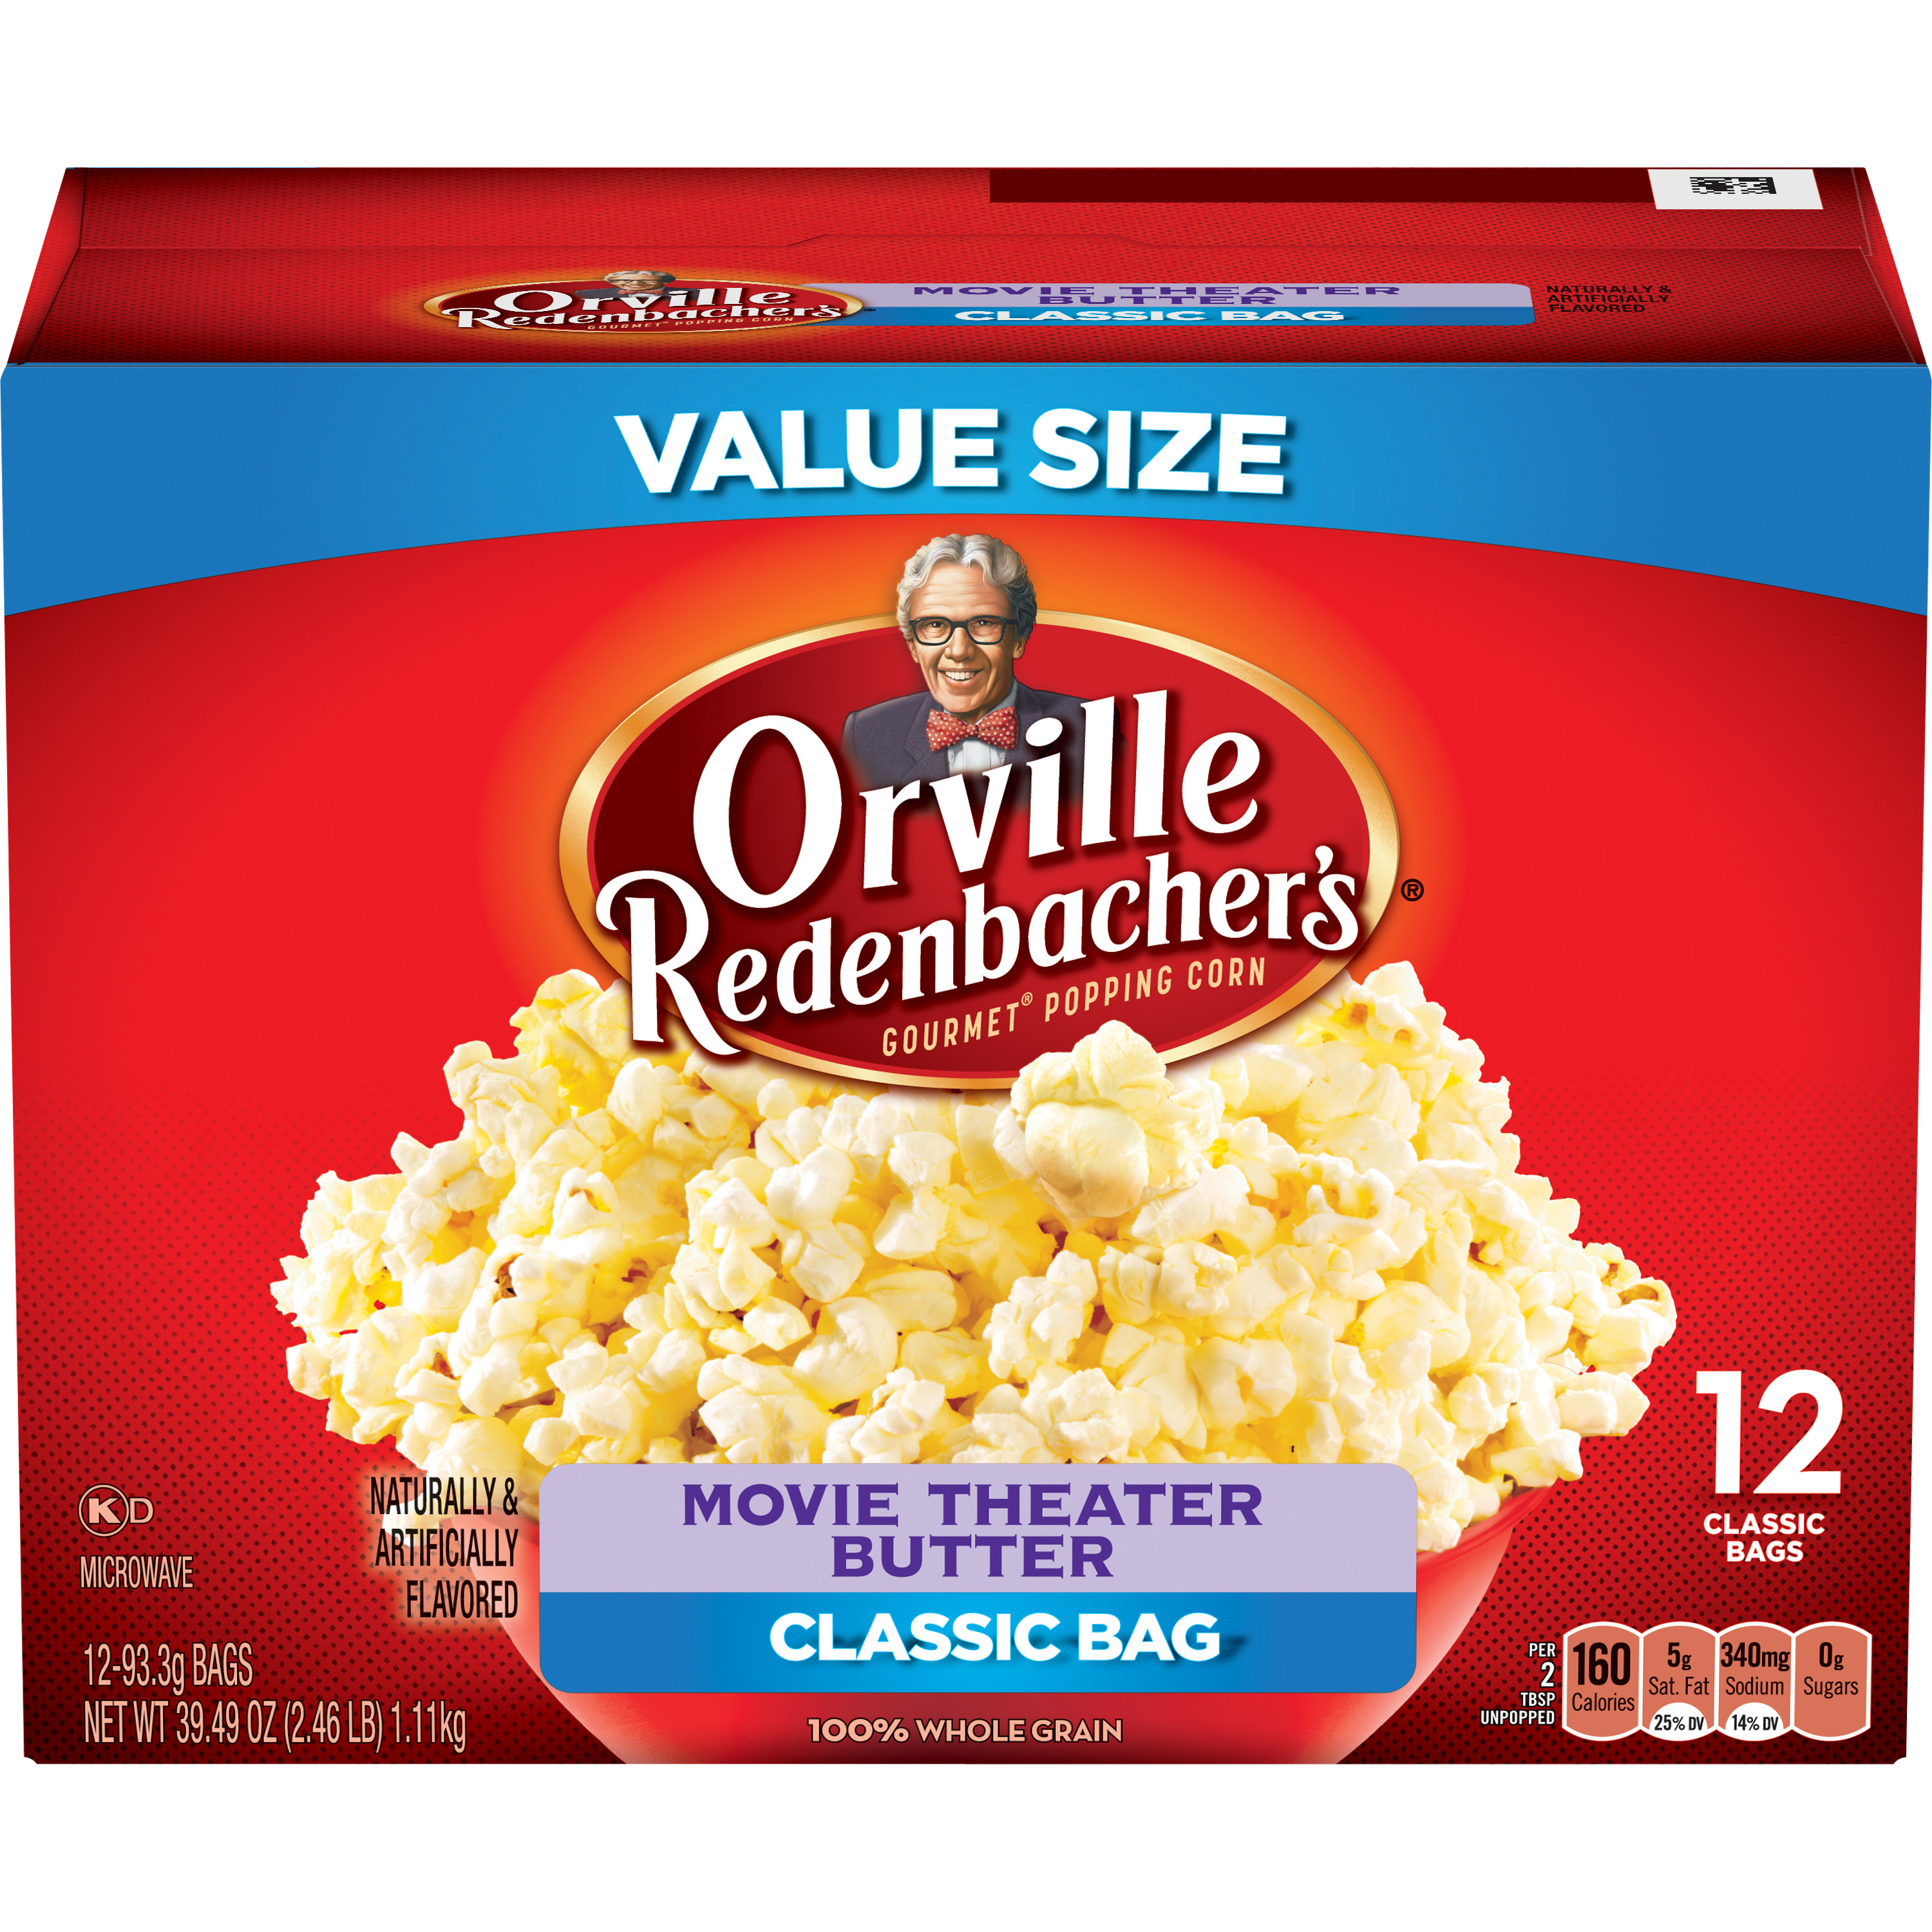 Orville Redenbacher's Movie Theater Butter Popcorn, 12 ct, 39.49 oz